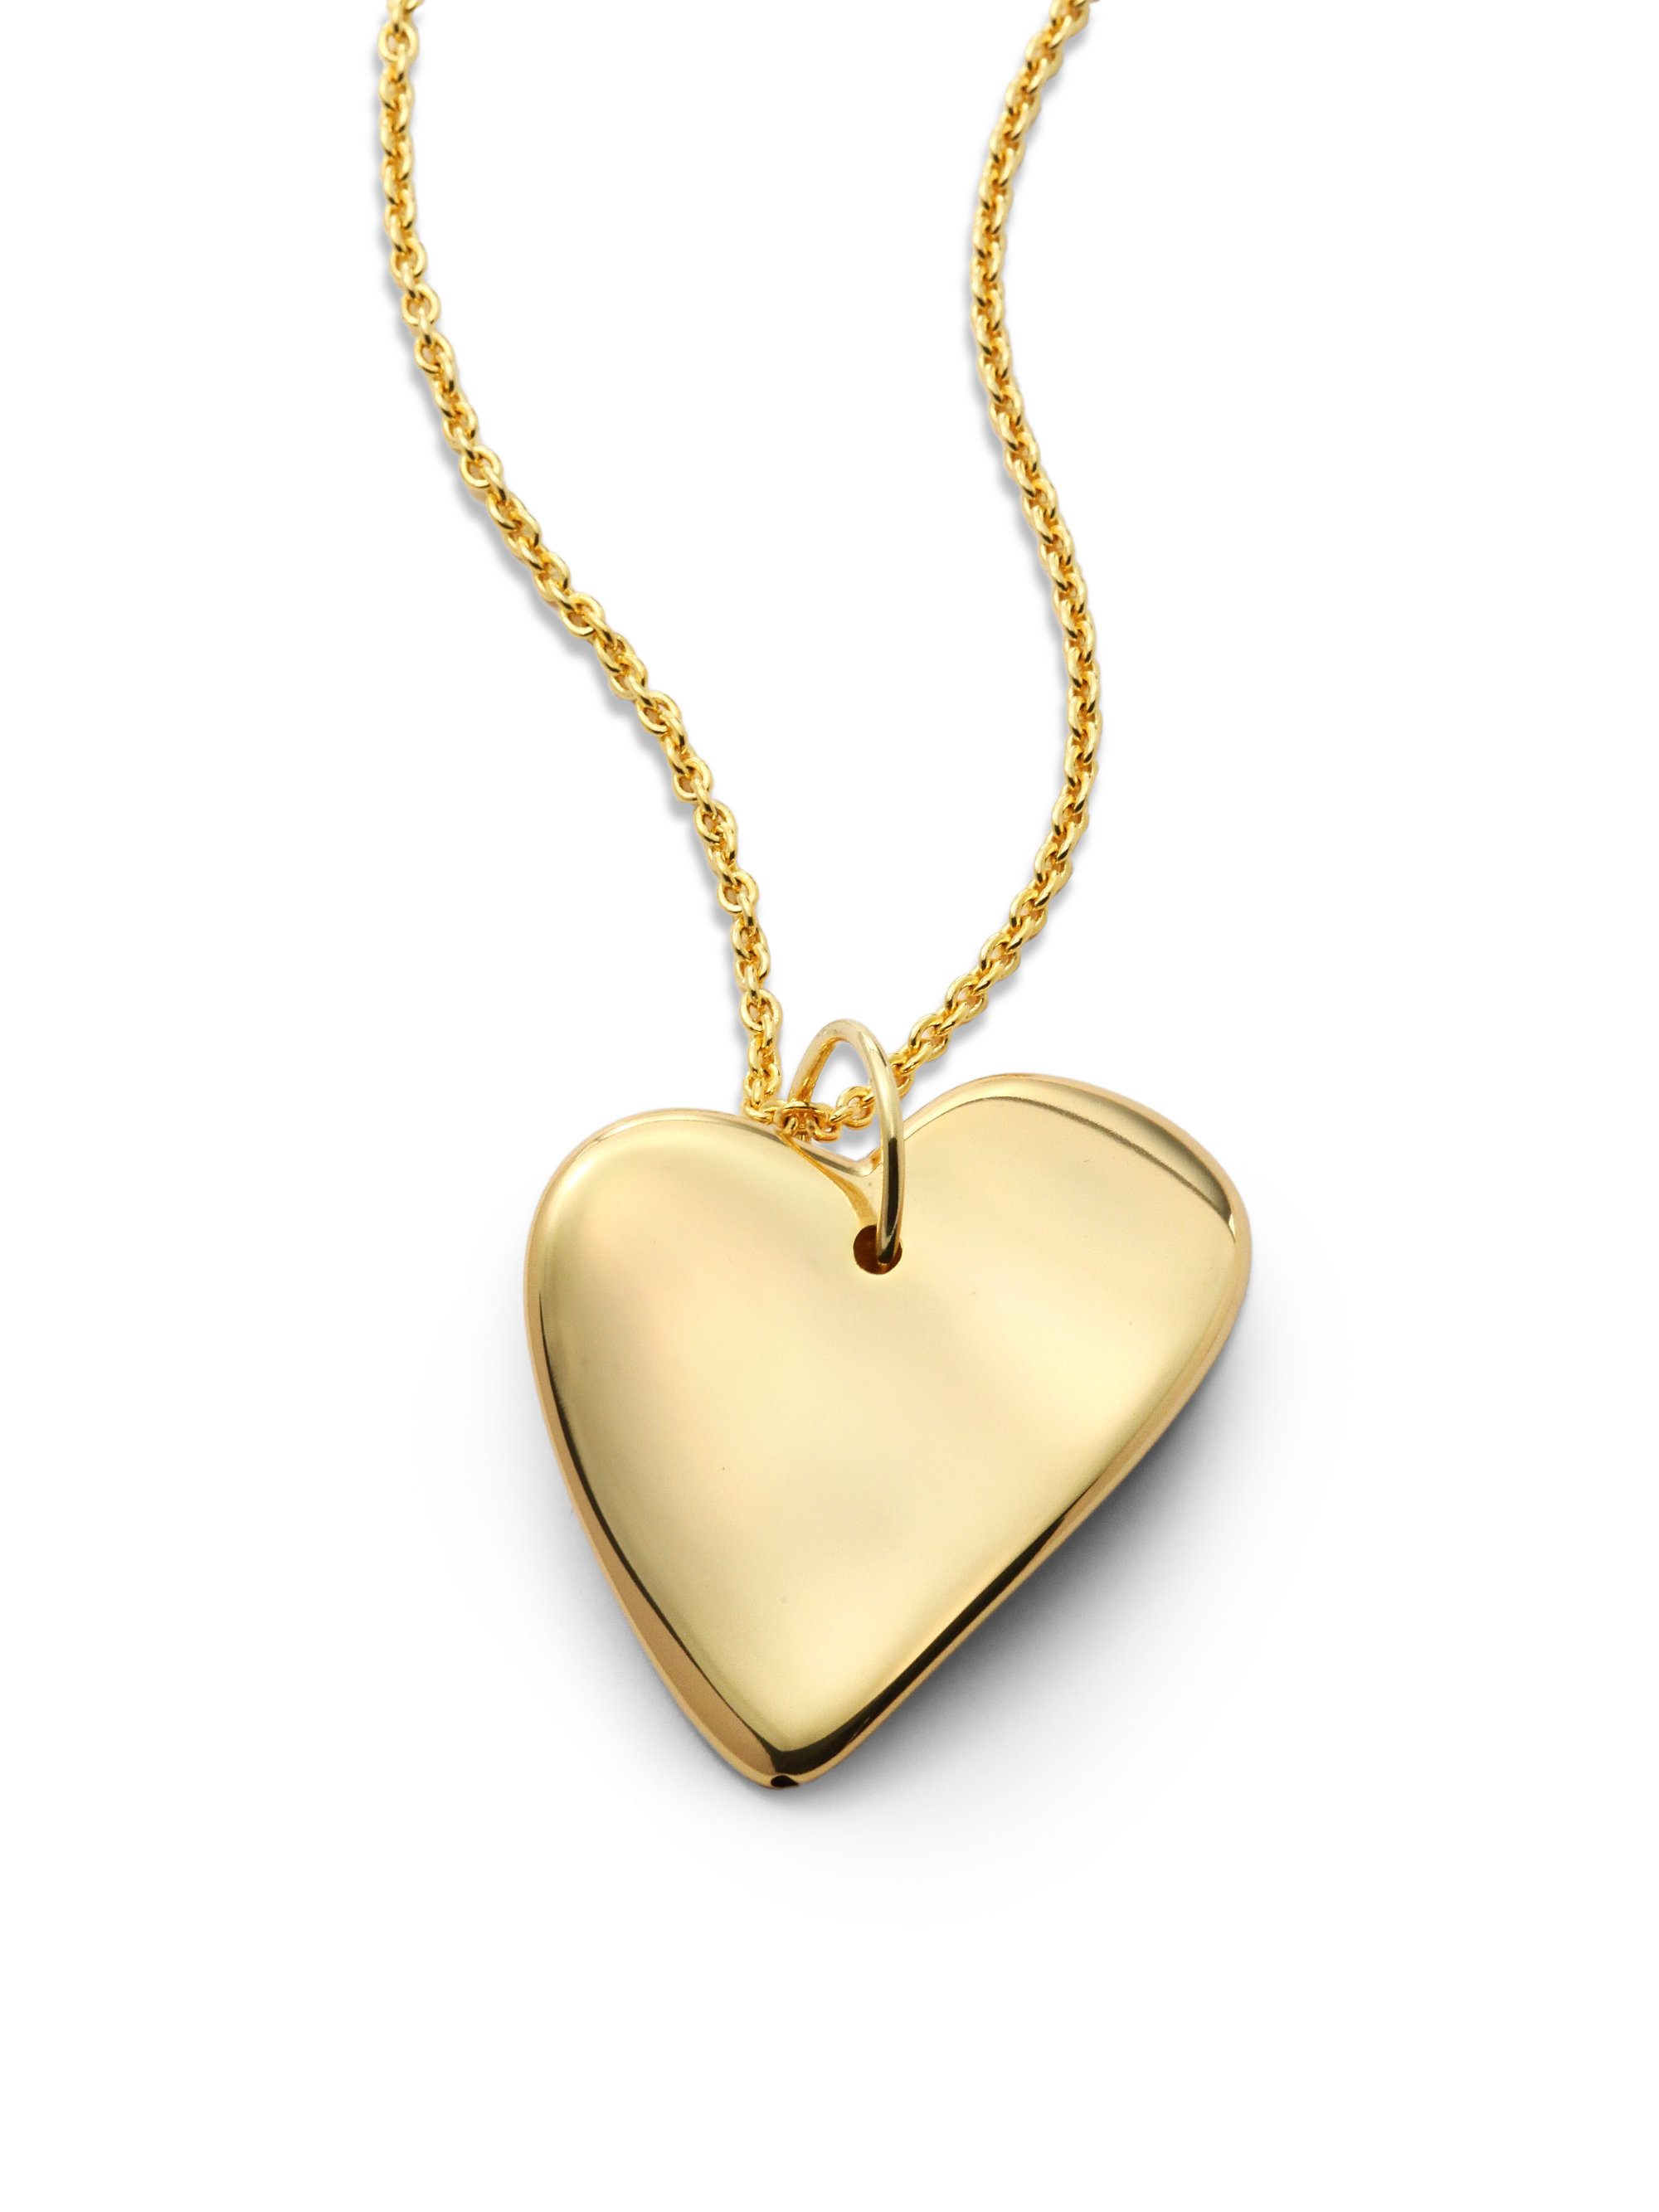 1Arunoaerre Metallic Asymmetrical Heart Pendant Necklace Pertaining To Most Current Asymmetrical Heart Necklaces (Gallery 5 of 25)